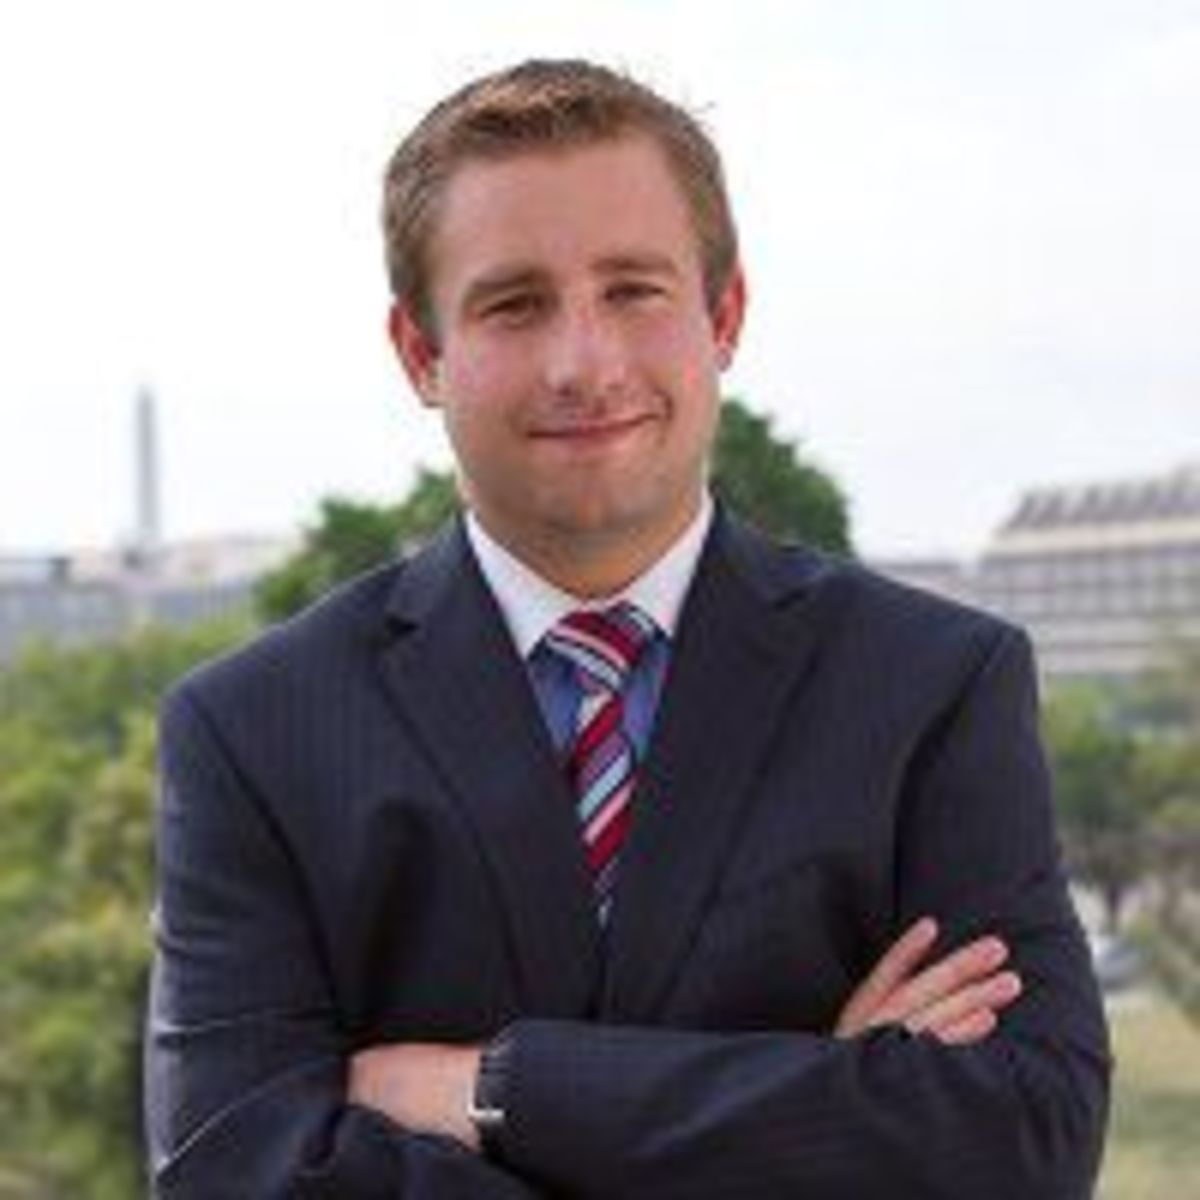 Wikileaks Strongly Implies Murdered DNC Data Director Seth Rich Was a Source